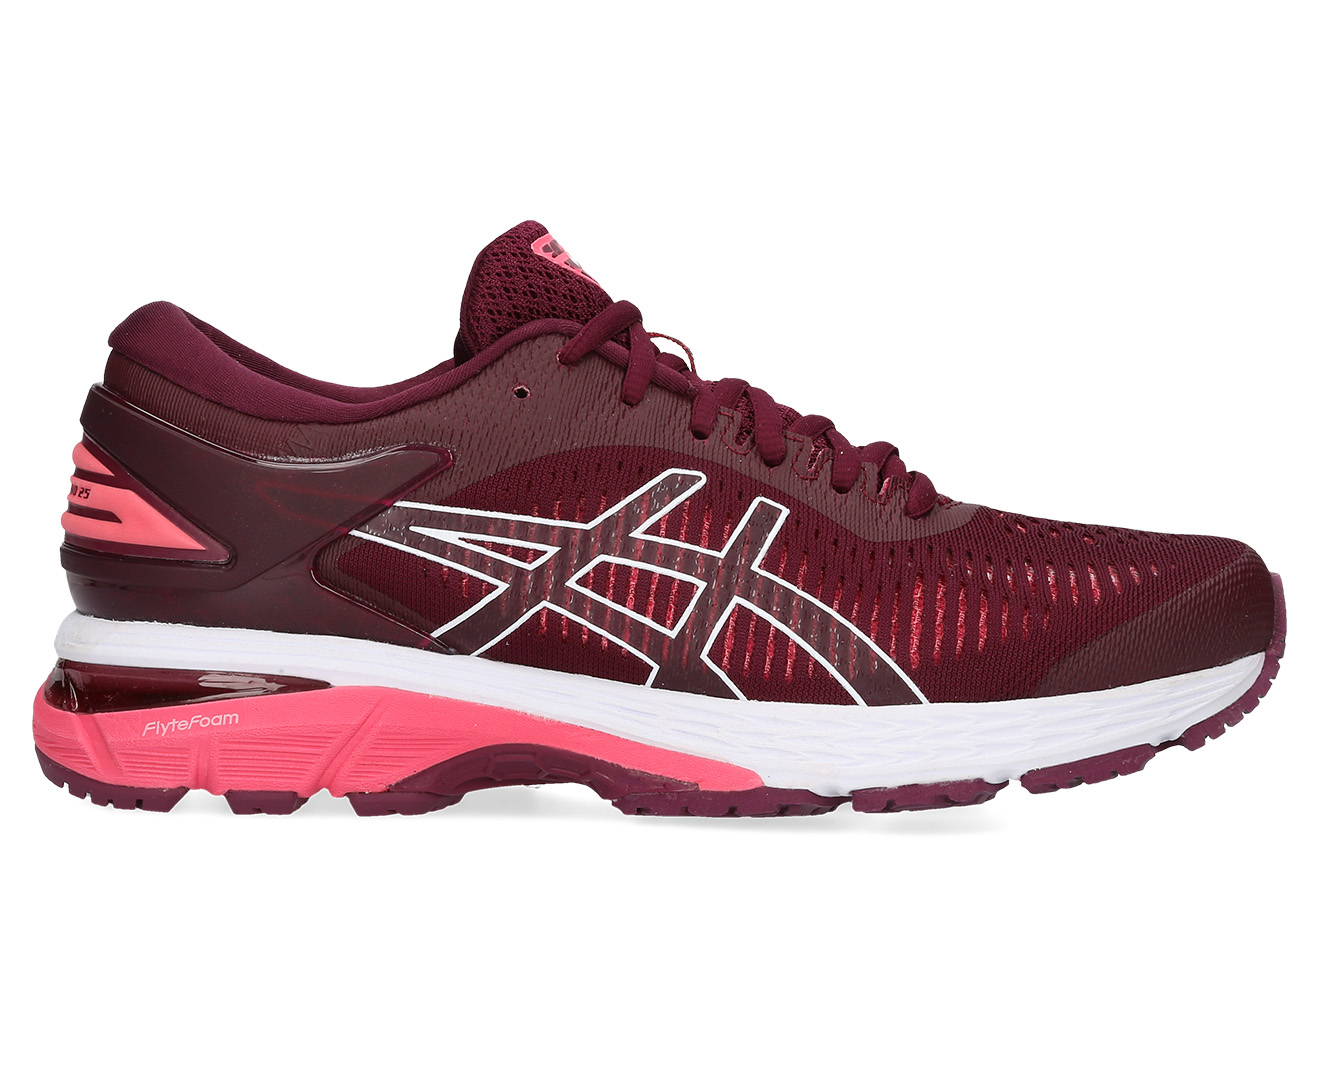 taille 40 e79d1 5cecb Details about ASICS Women's GEL-Kayano 25 Shoe - Roselle/Pink Cameo